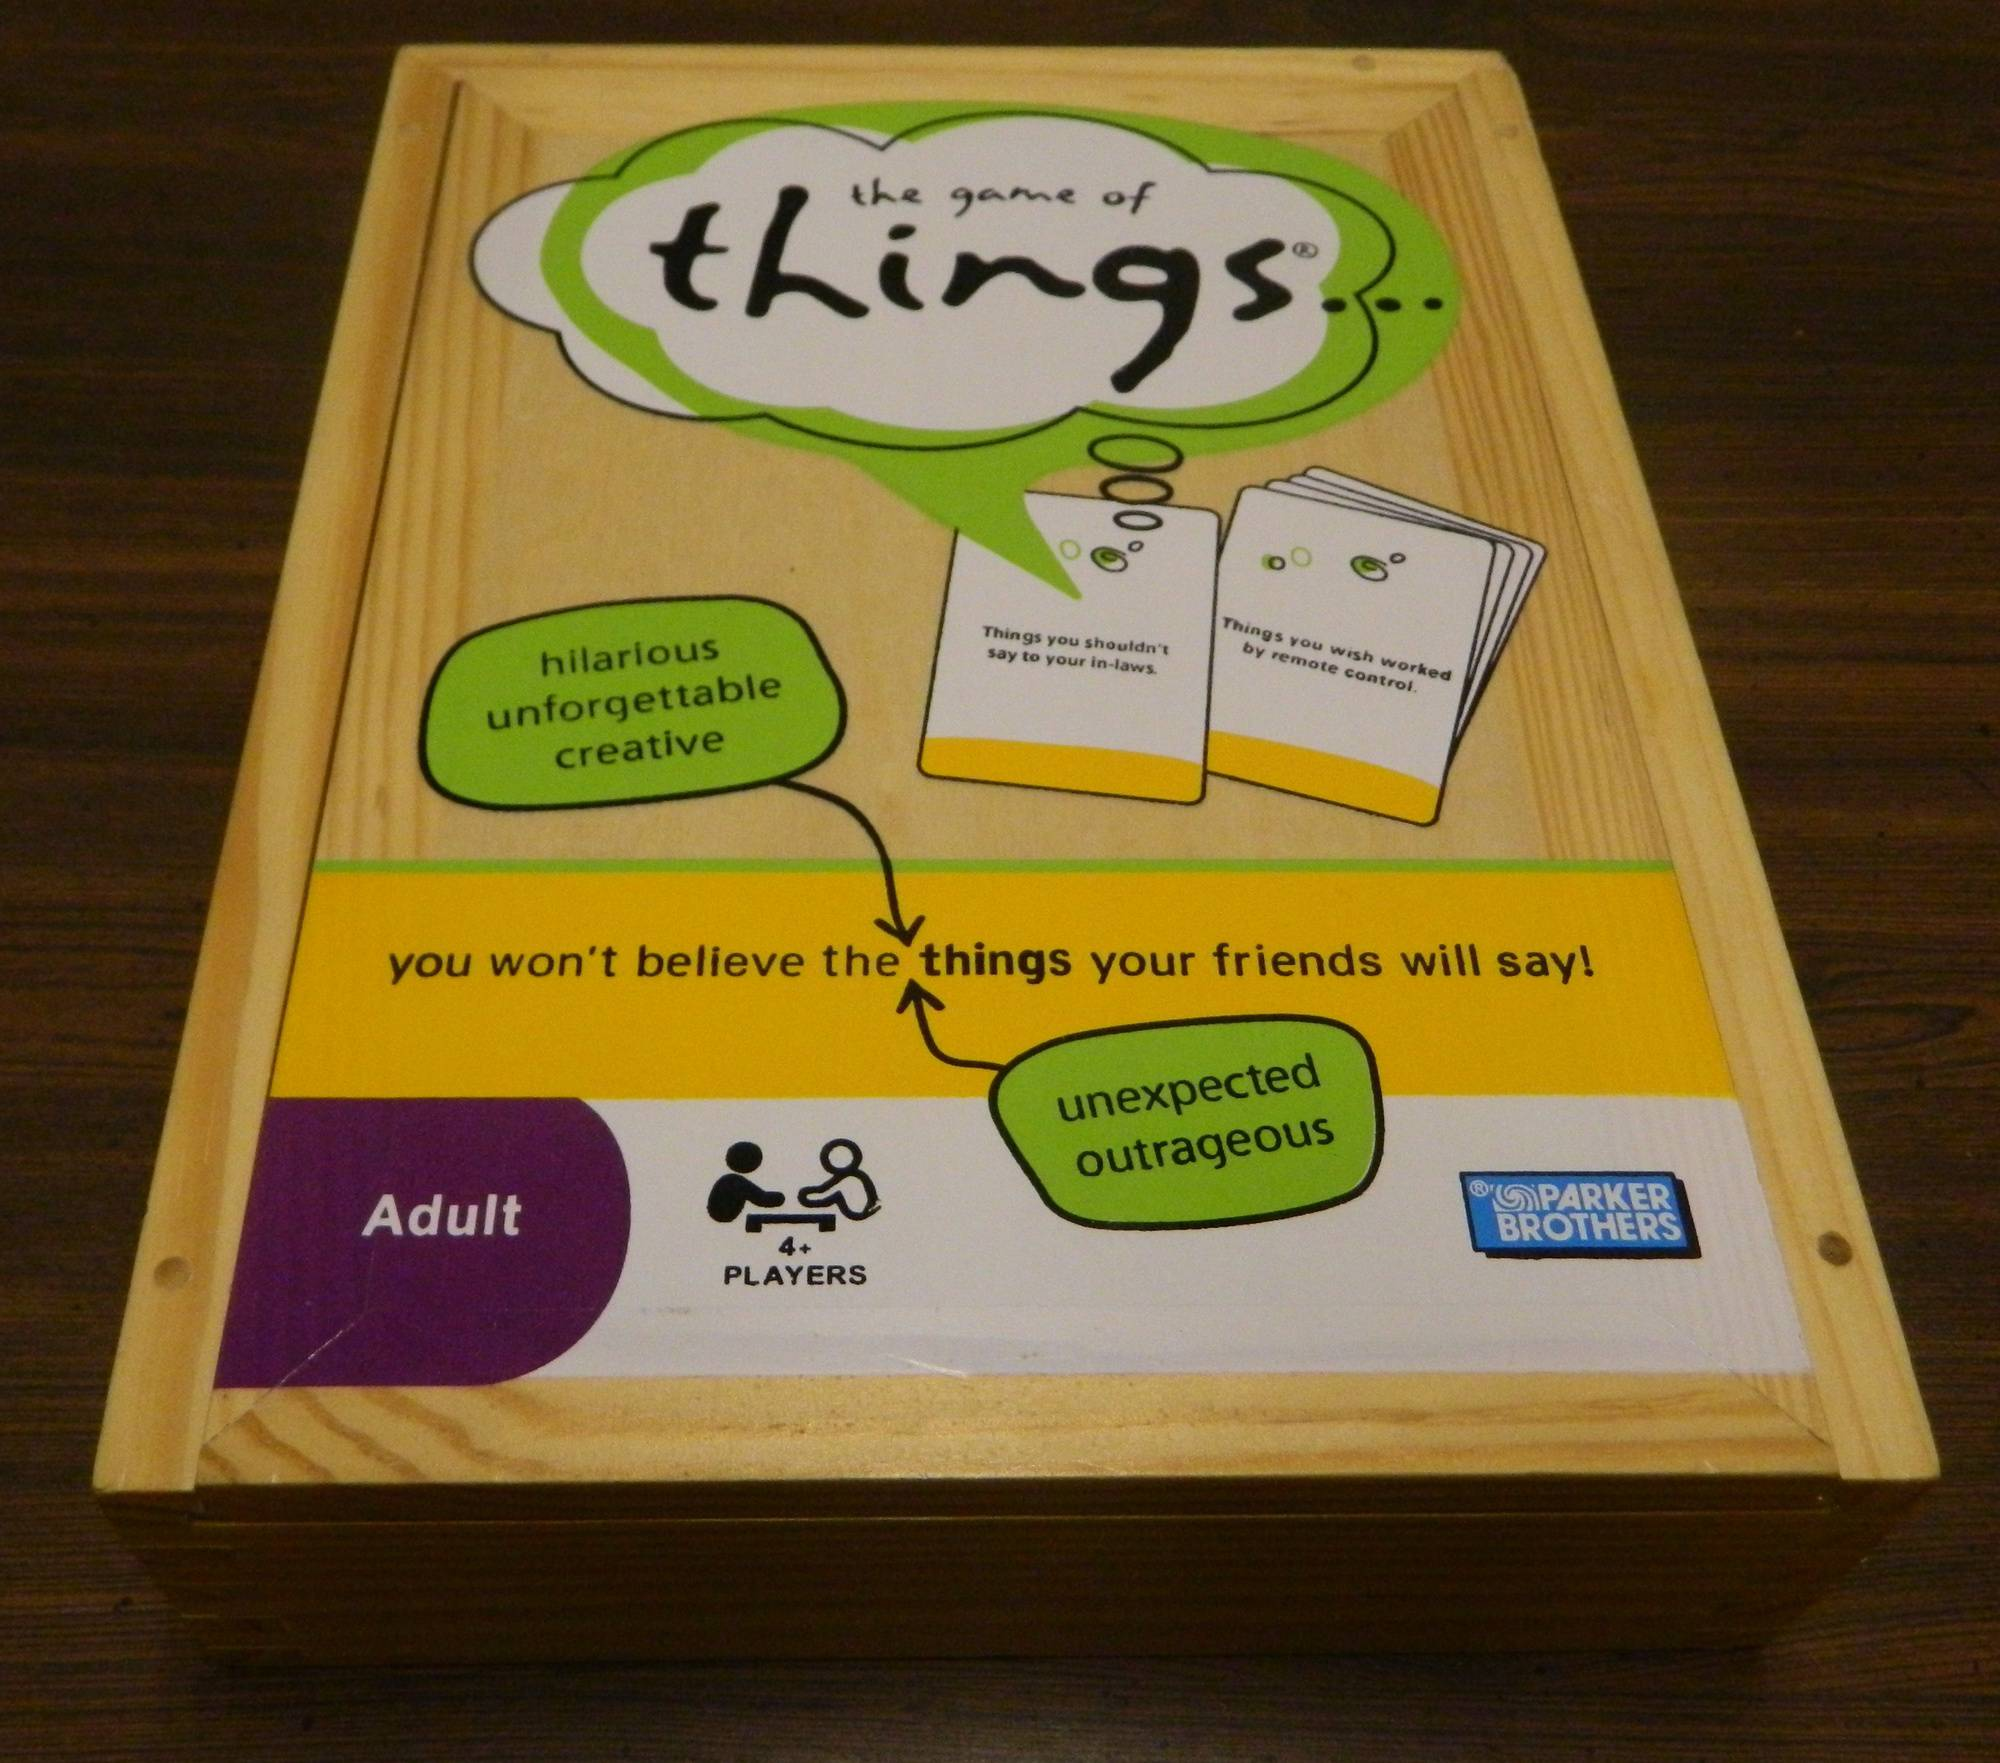 Box for The Game of Things